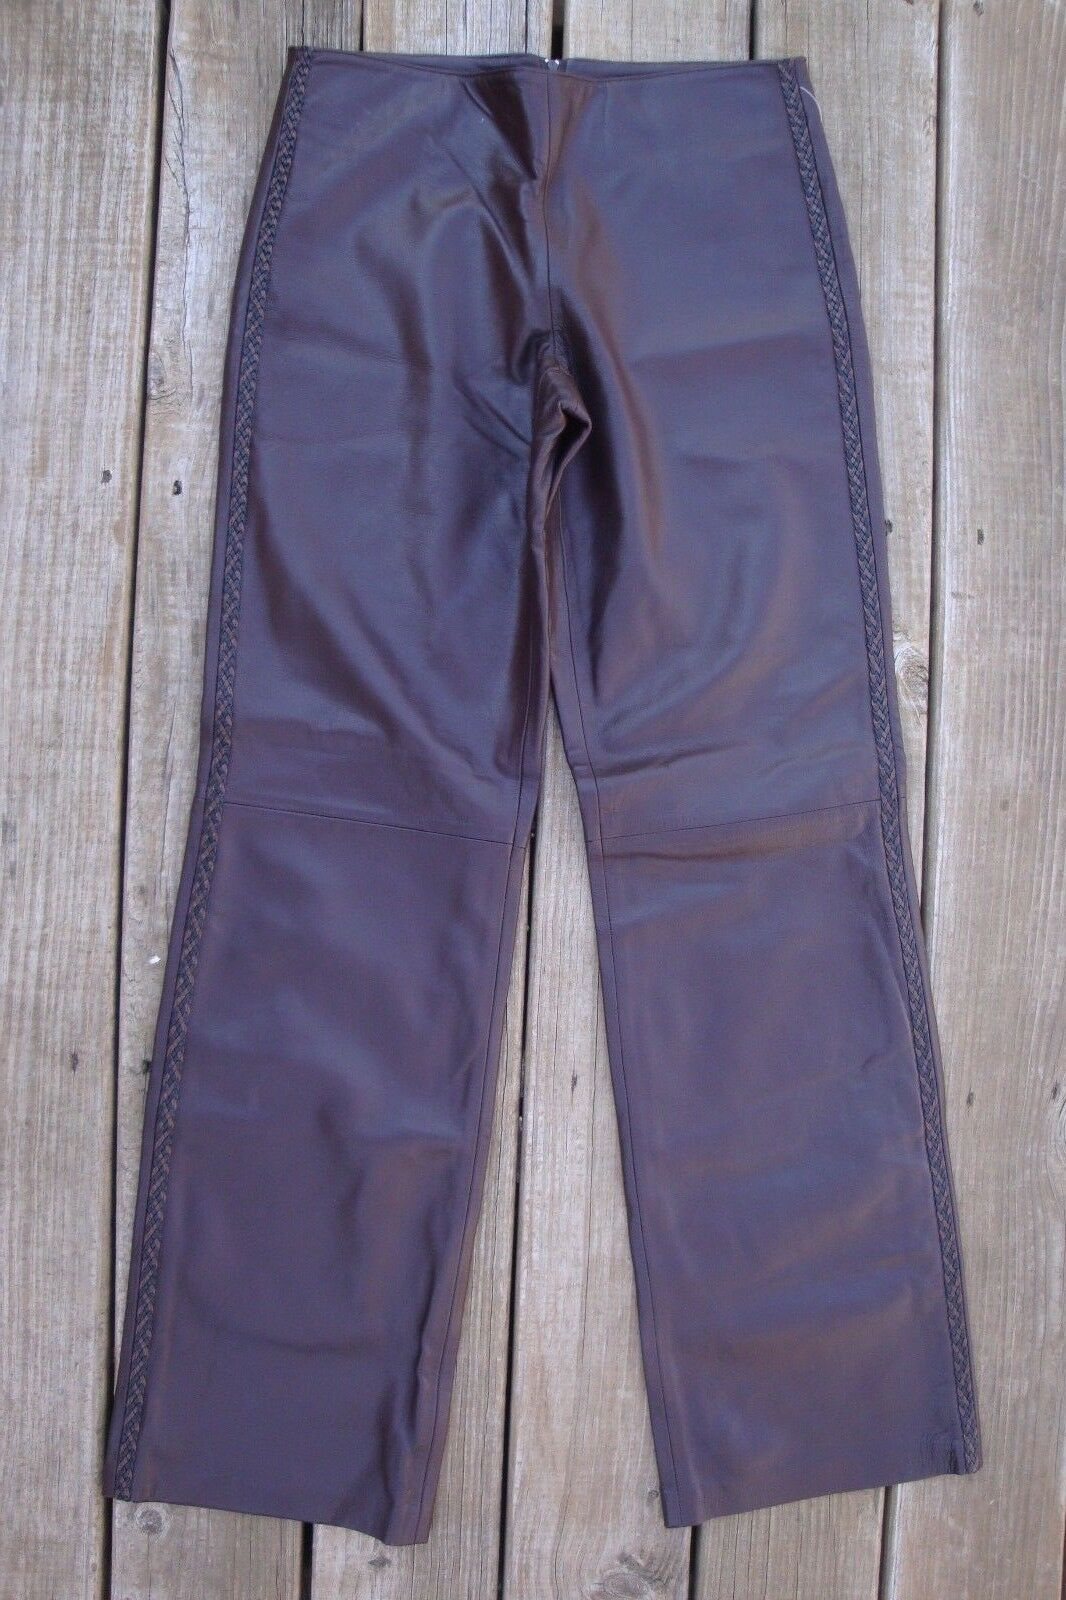 Isabel Brown  leather size 6 pants. 31 inch waist. In excellent shape.